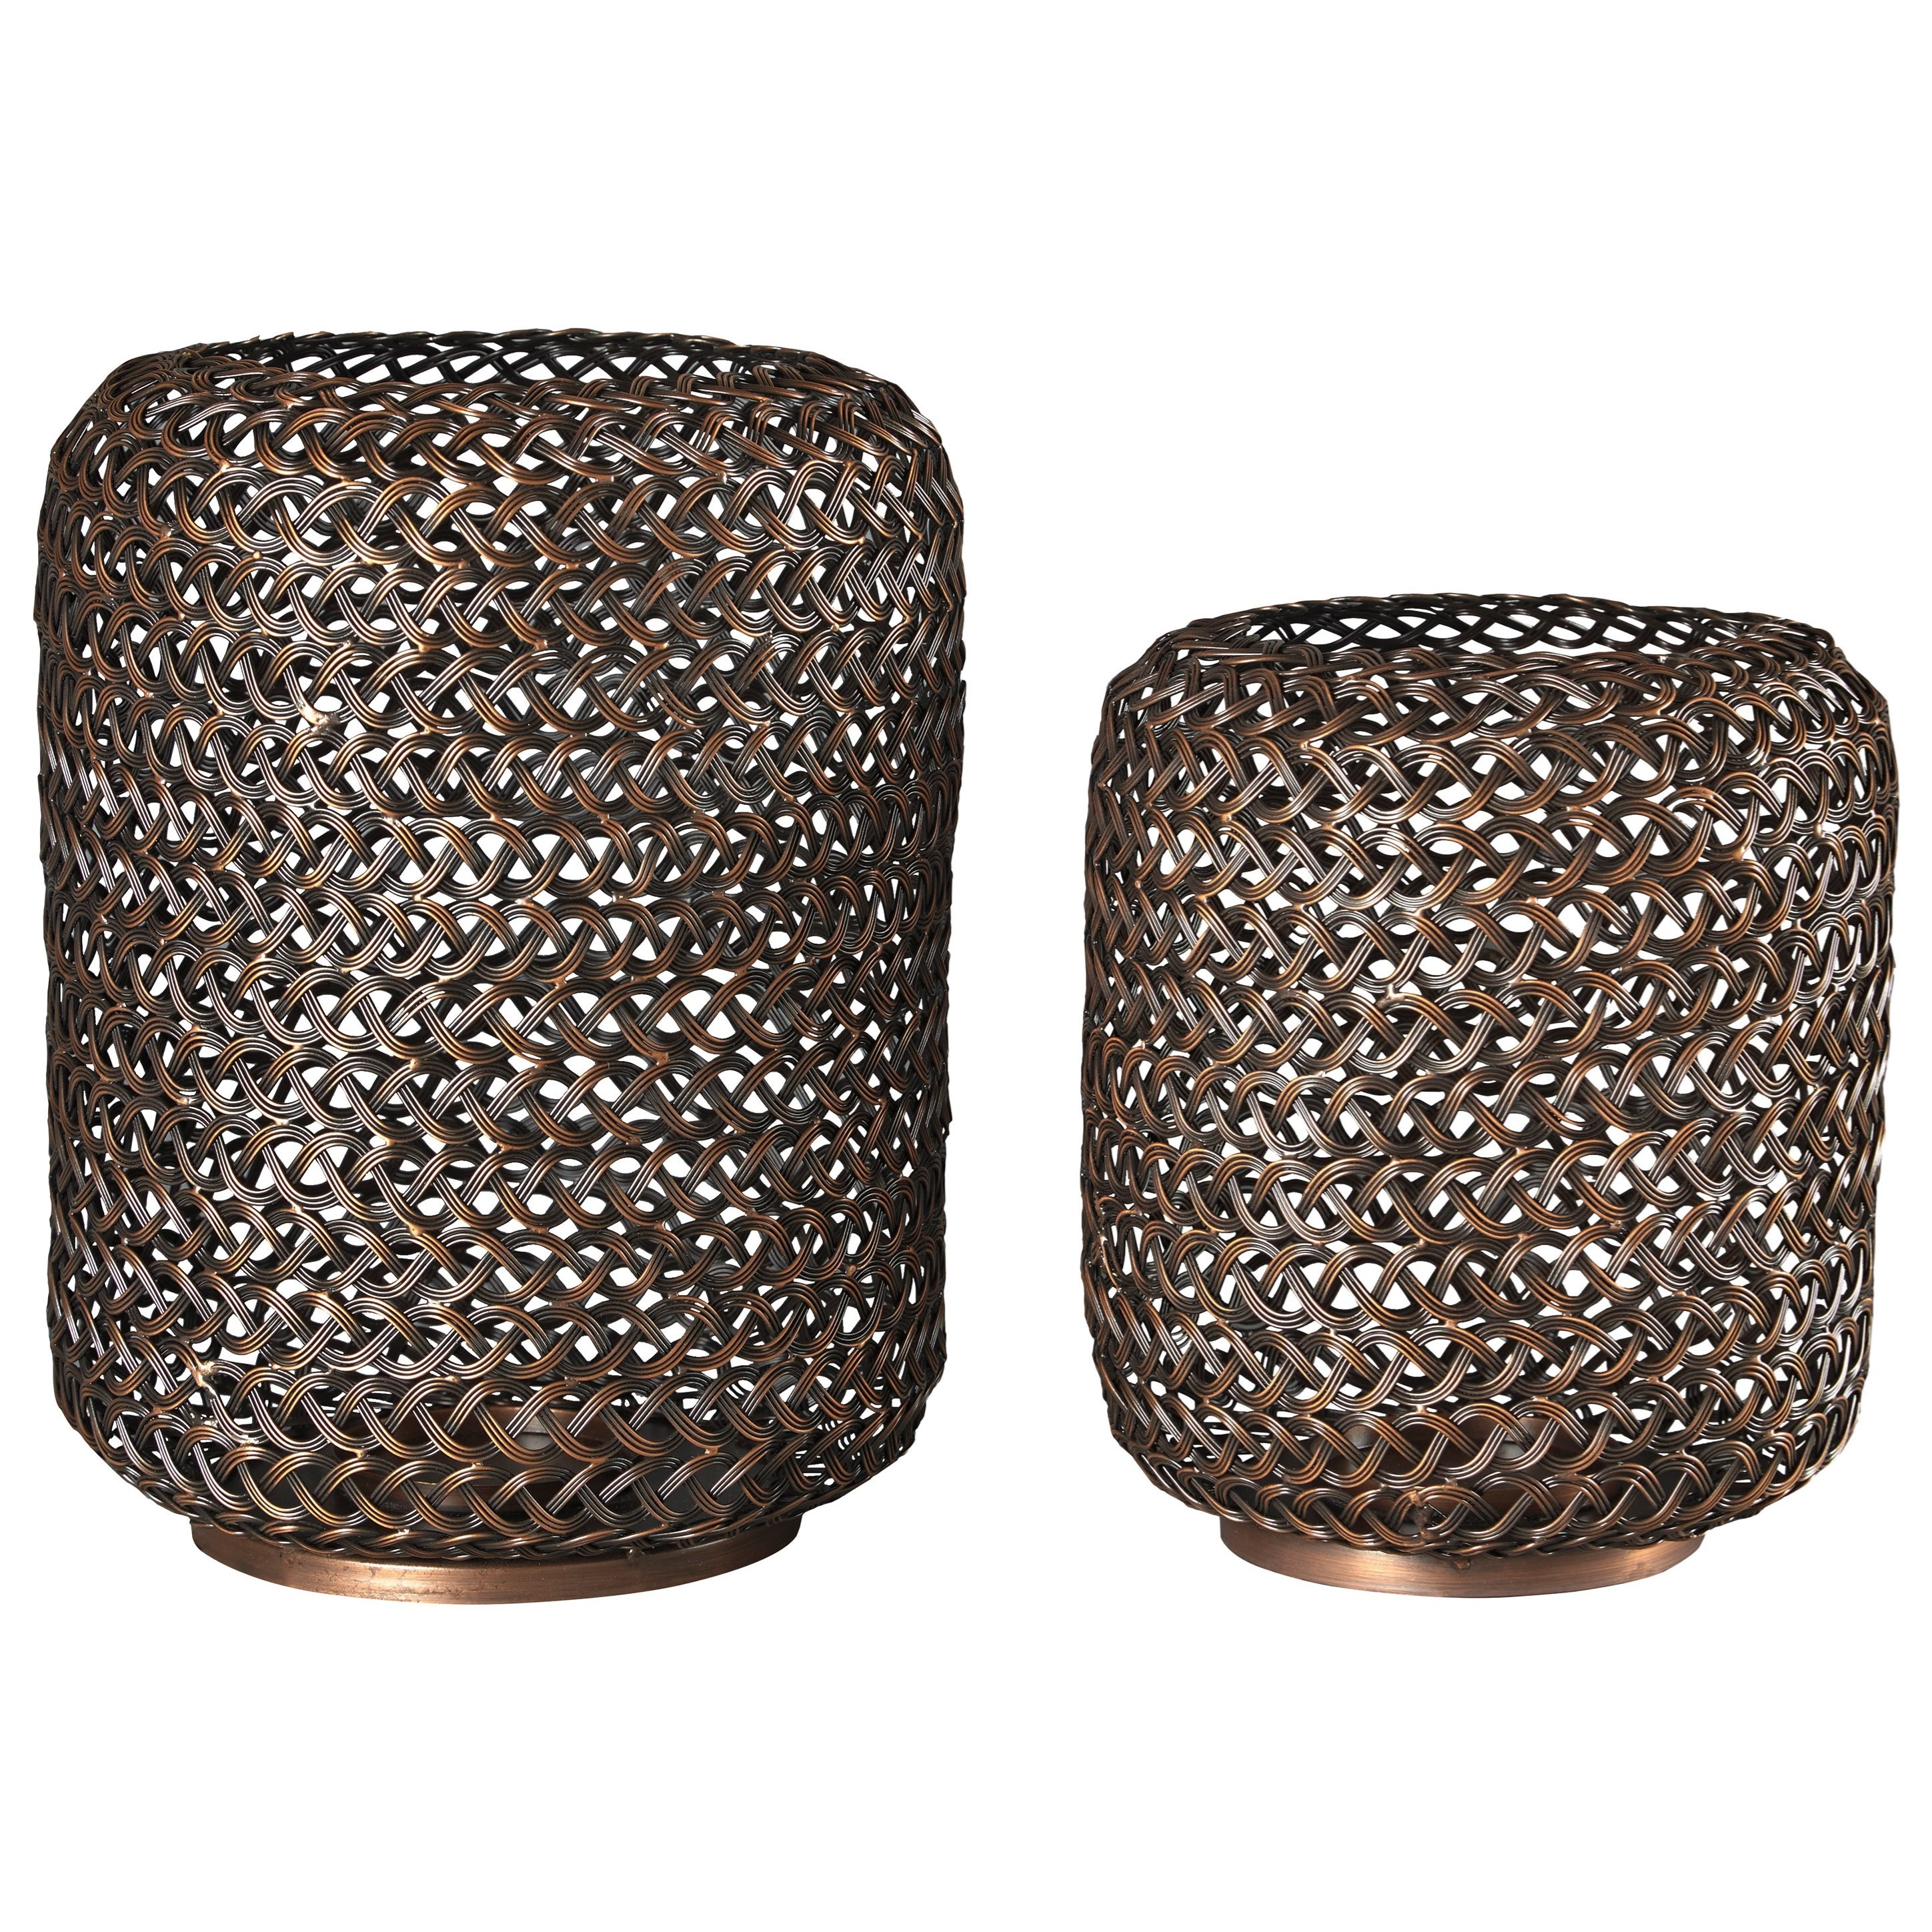 Signature Design by Ashley Accents Odbart Antique Bronze Finish Candle Holders - Item Number: A2000226C